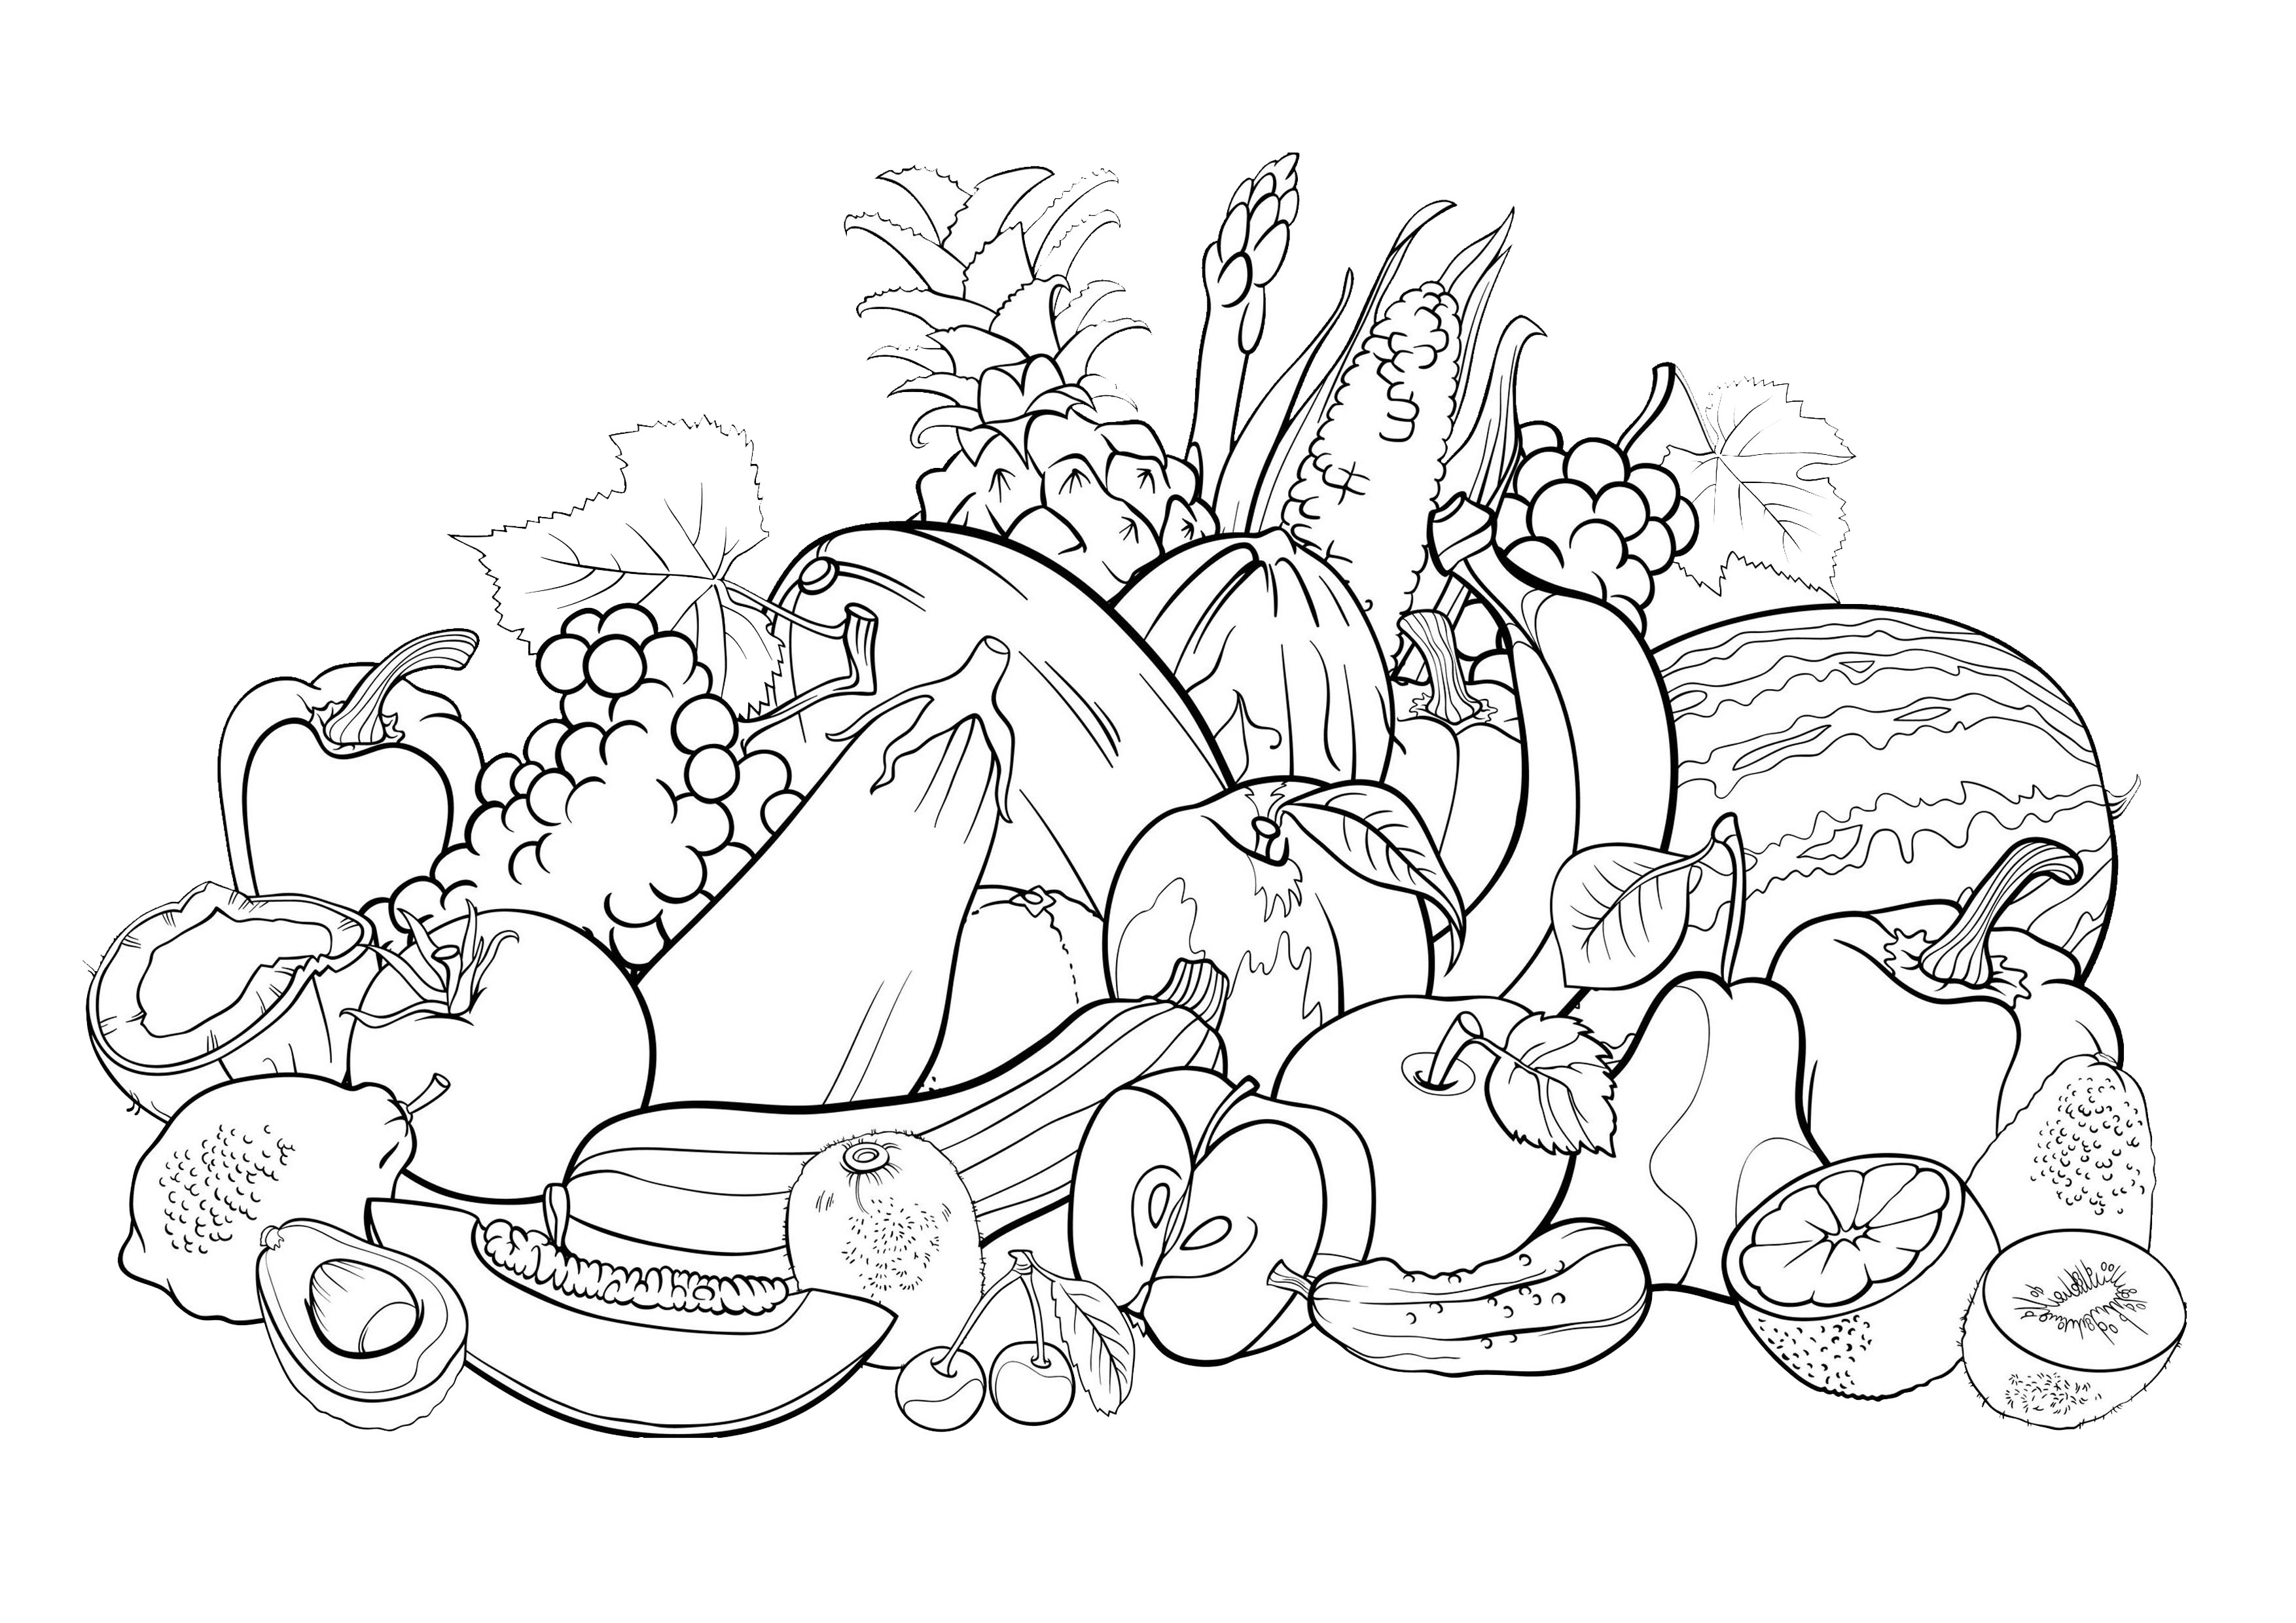 fruit coloring sheet grapes with leaves fruits and berries coloring pages for sheet coloring fruit